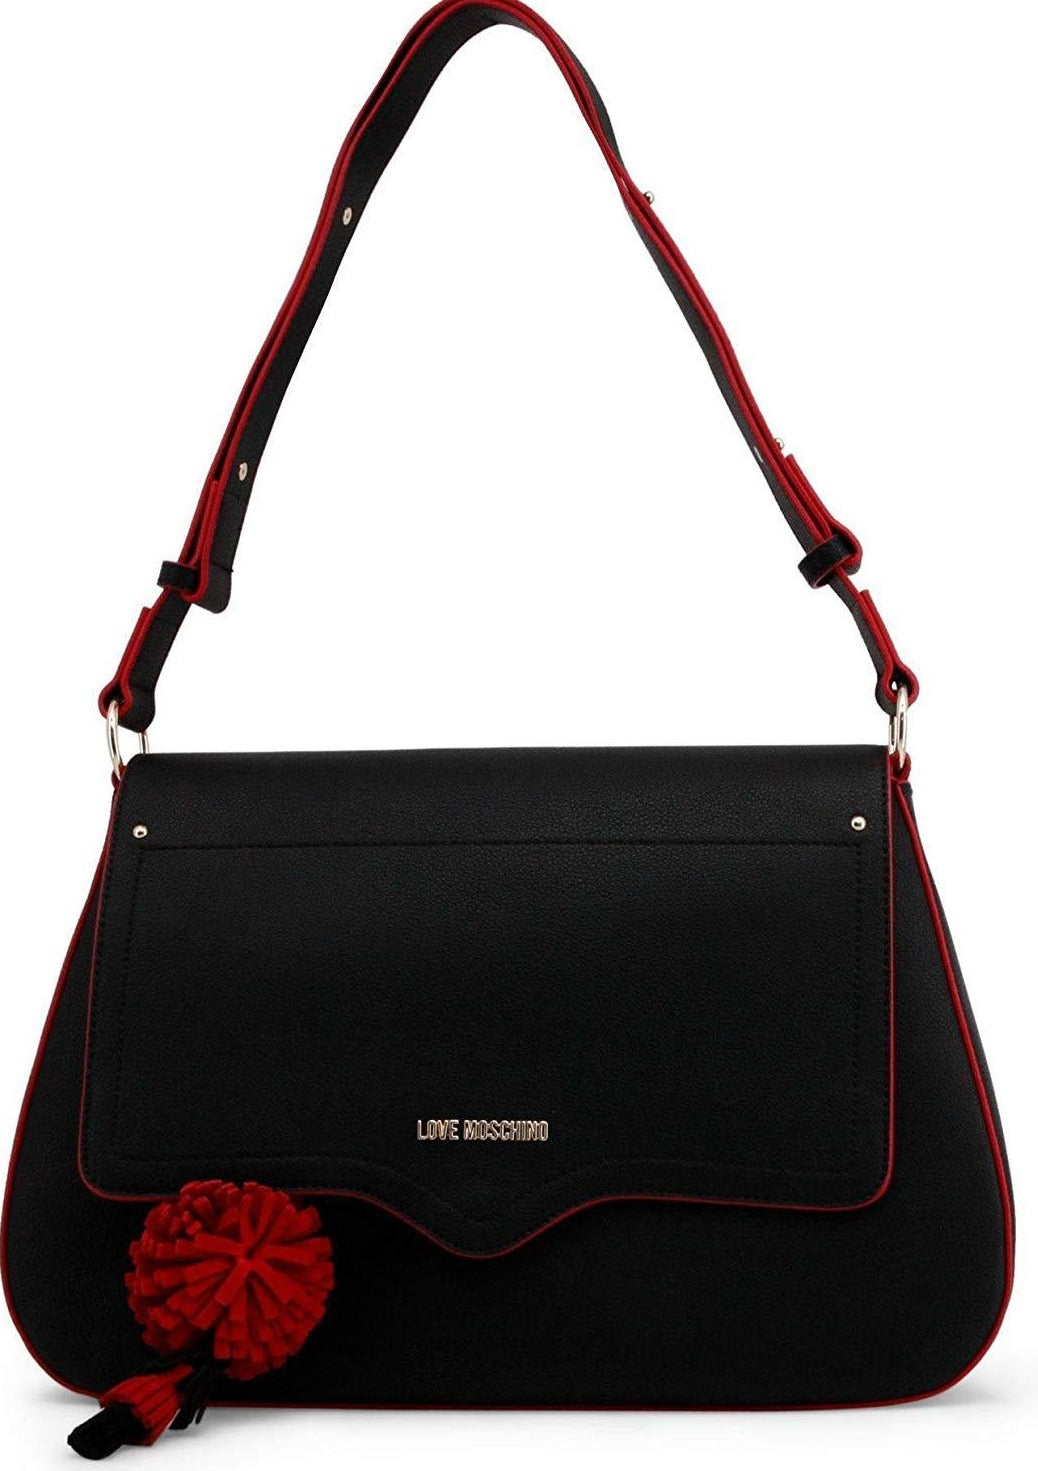 Moschino - SHOULDER BAG - BLACK Bags Shoulder bags Love Moschino